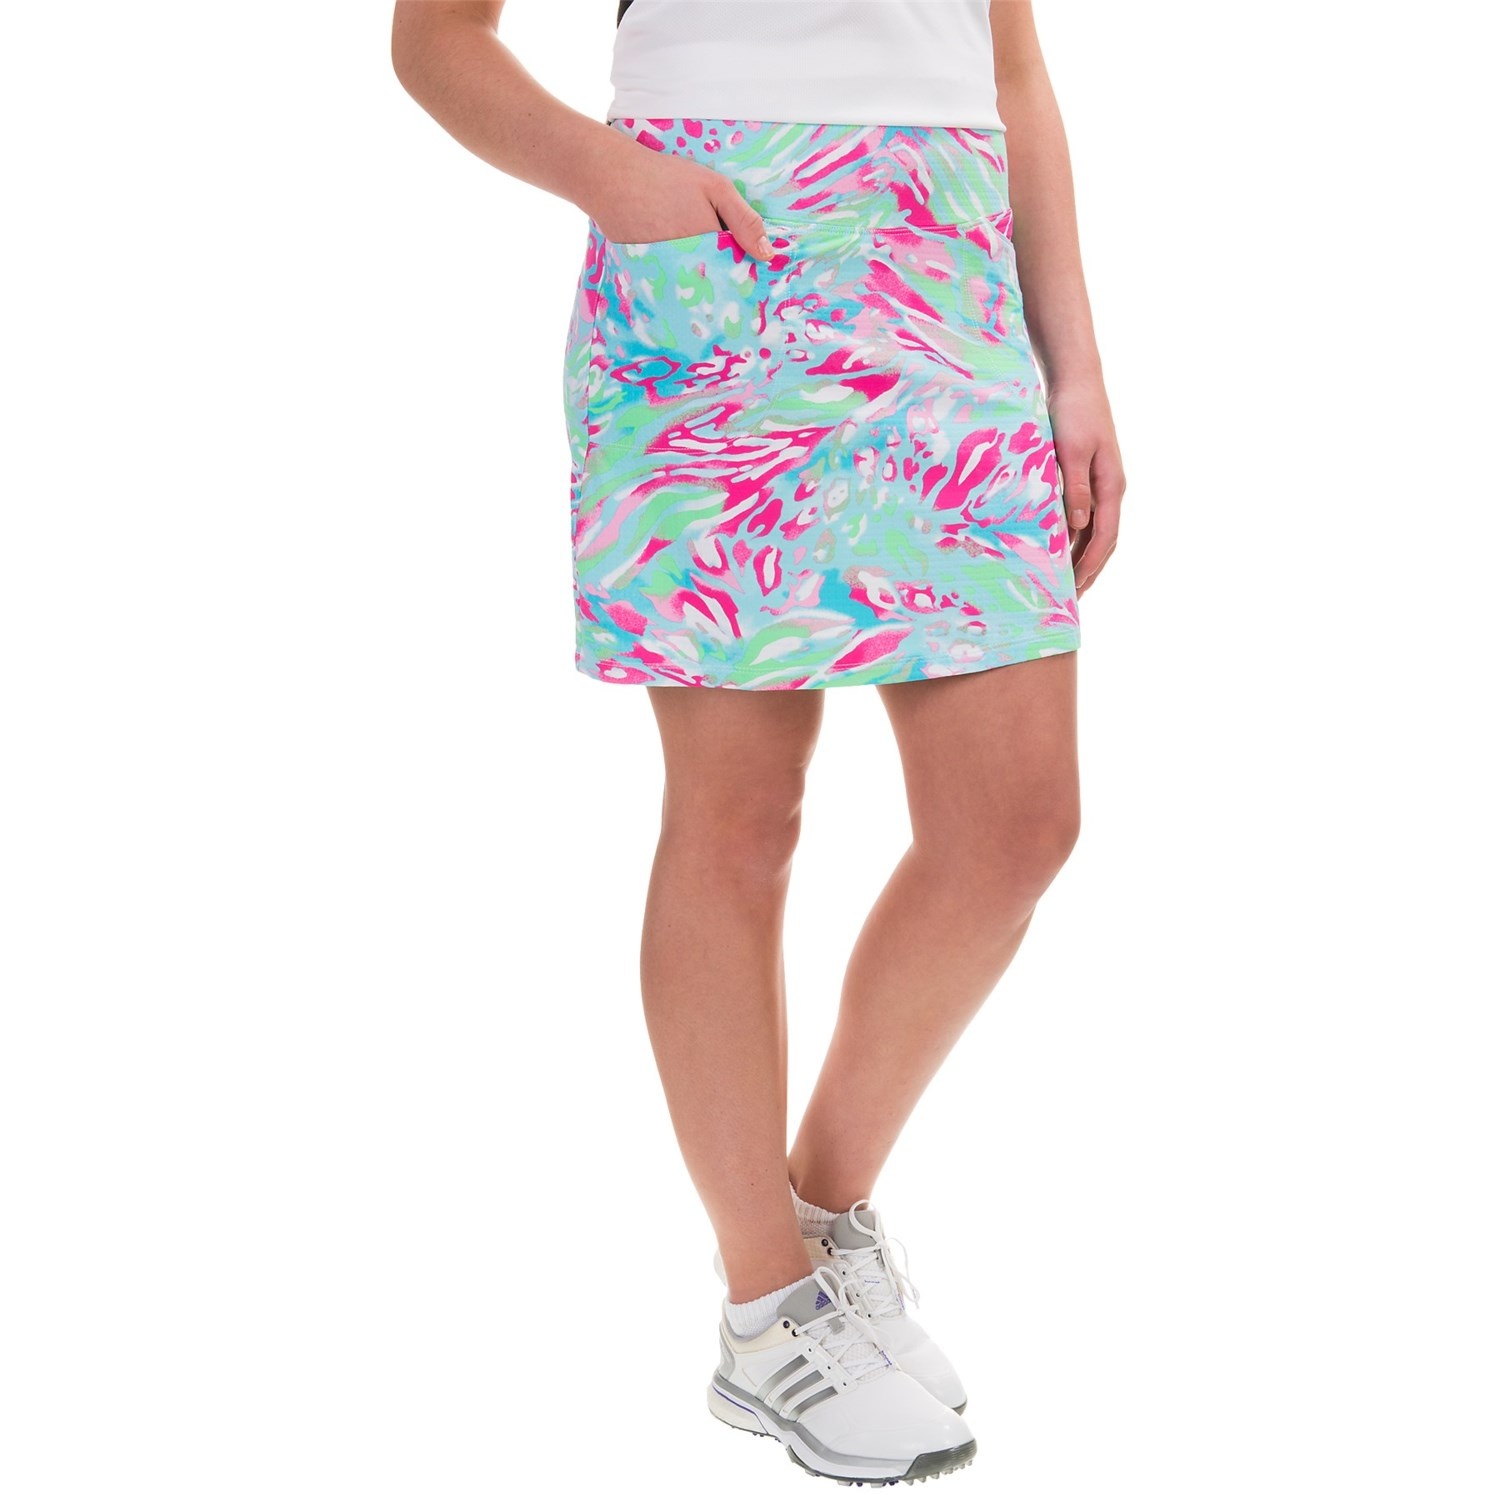 Icikuls Summer Skin Skort (For Women) - Save 74%